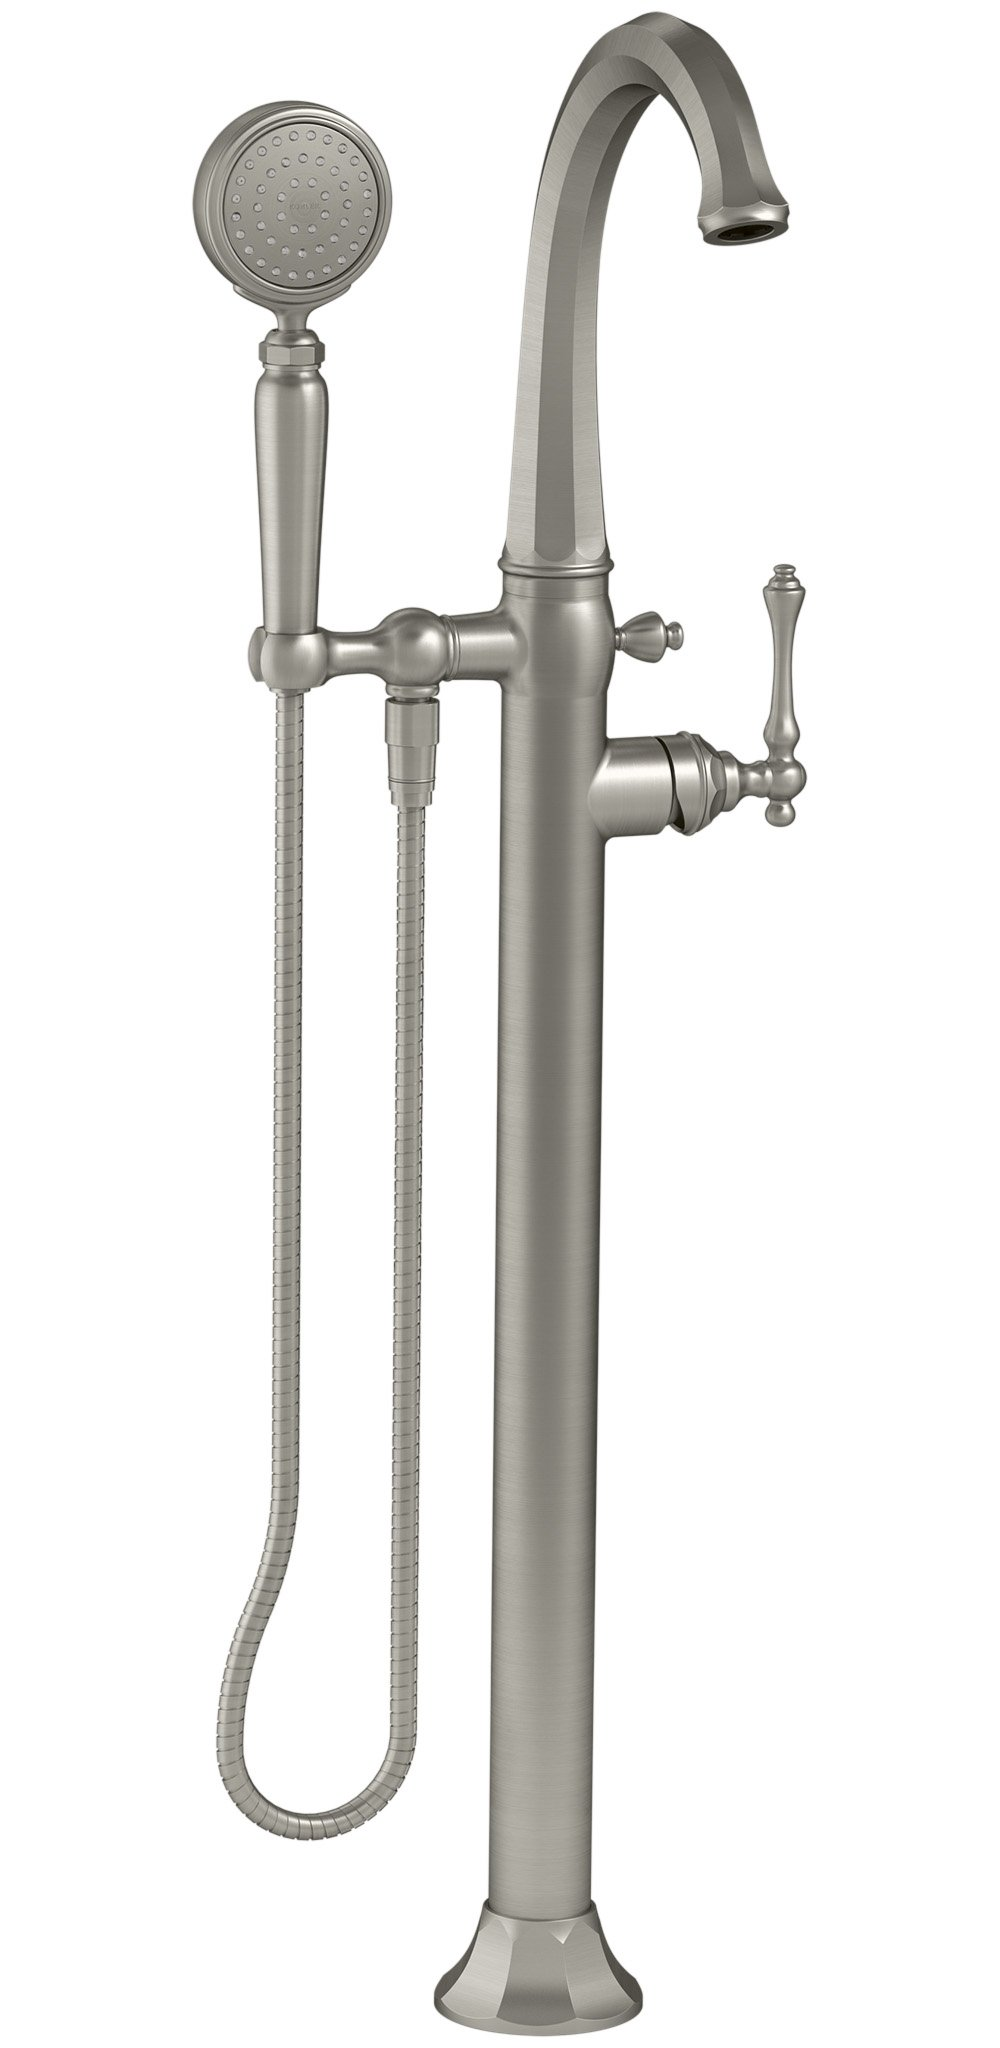 KOHLER K-T97332-4-BN Kelston Floor-Mount Bath Filler with Hand Shower, Vibrant Brushed Nickel by Kohler